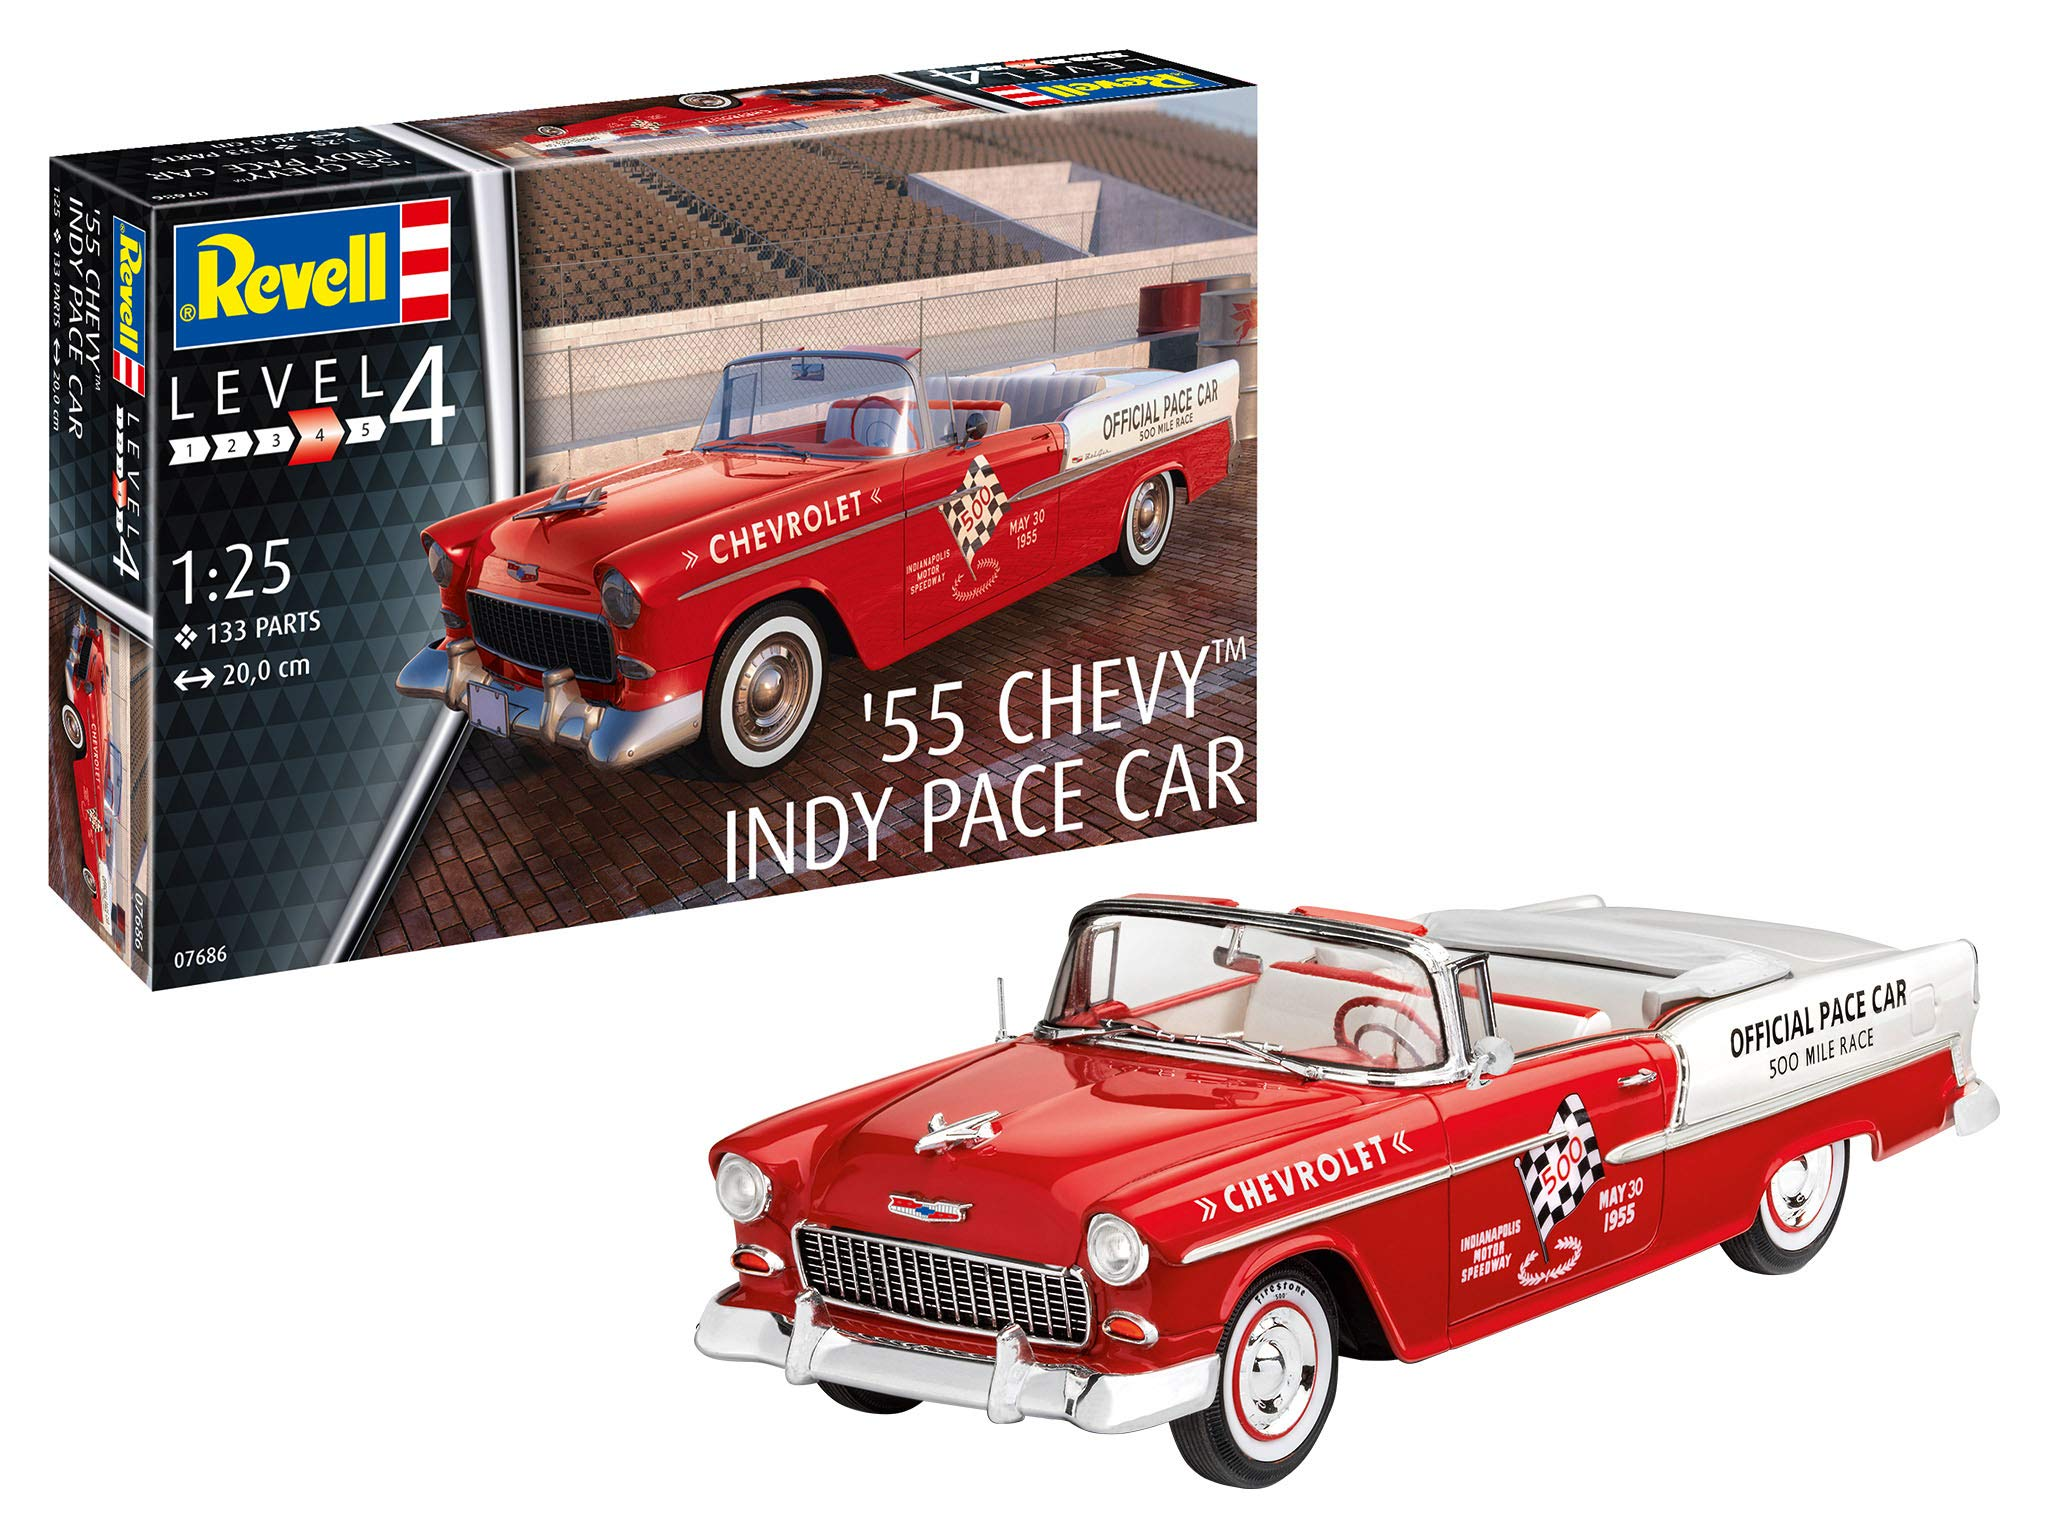 Revell GmbH Revell 07686 7686 1:24 '55 Chevy Indy Pace Car Plastic Model Kit, Multicolour, 1/25